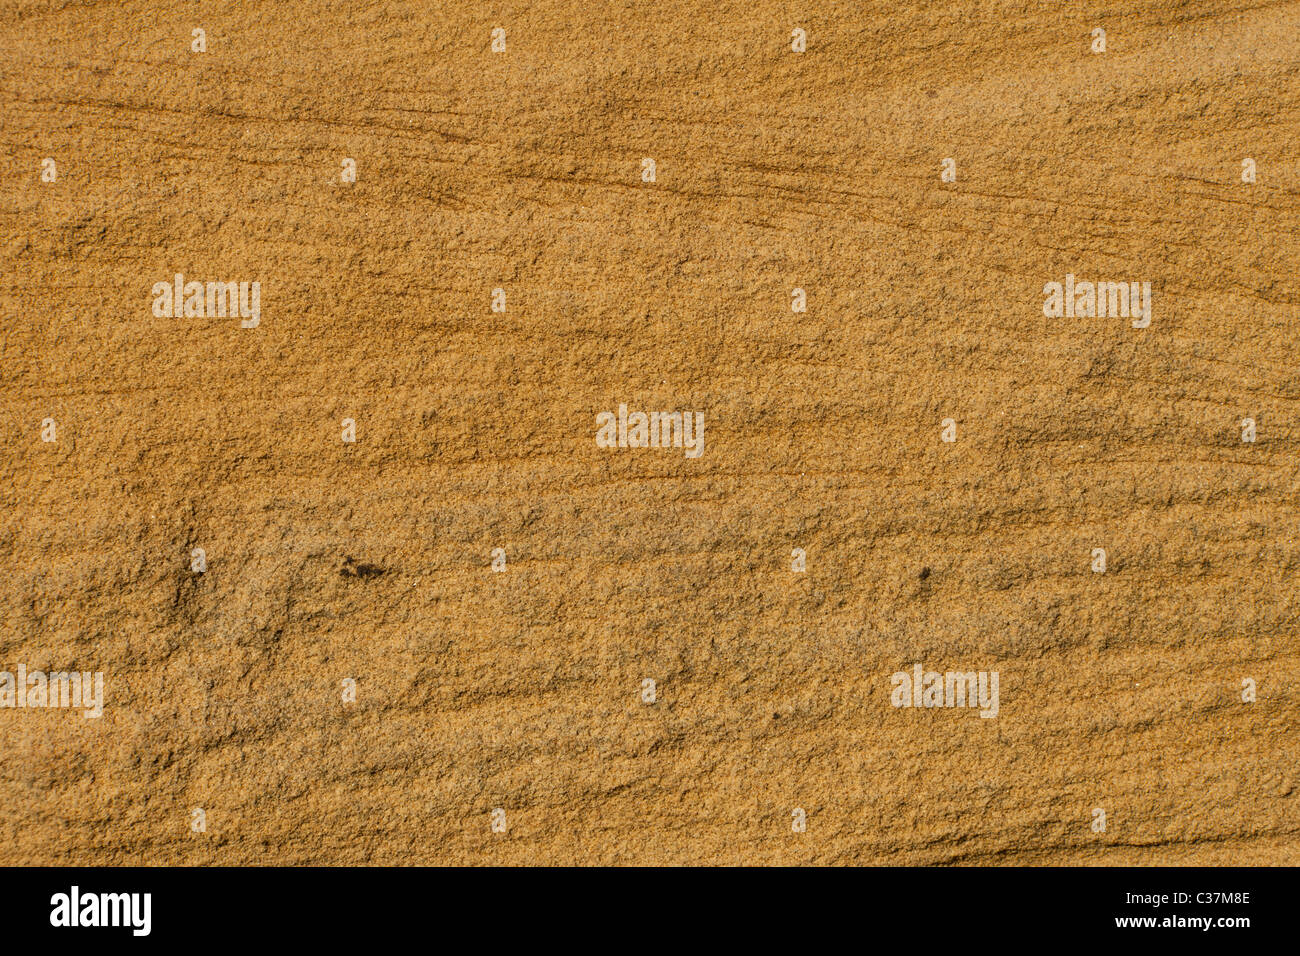 a deep brown sandstone texture ideal for a background - Stock Image